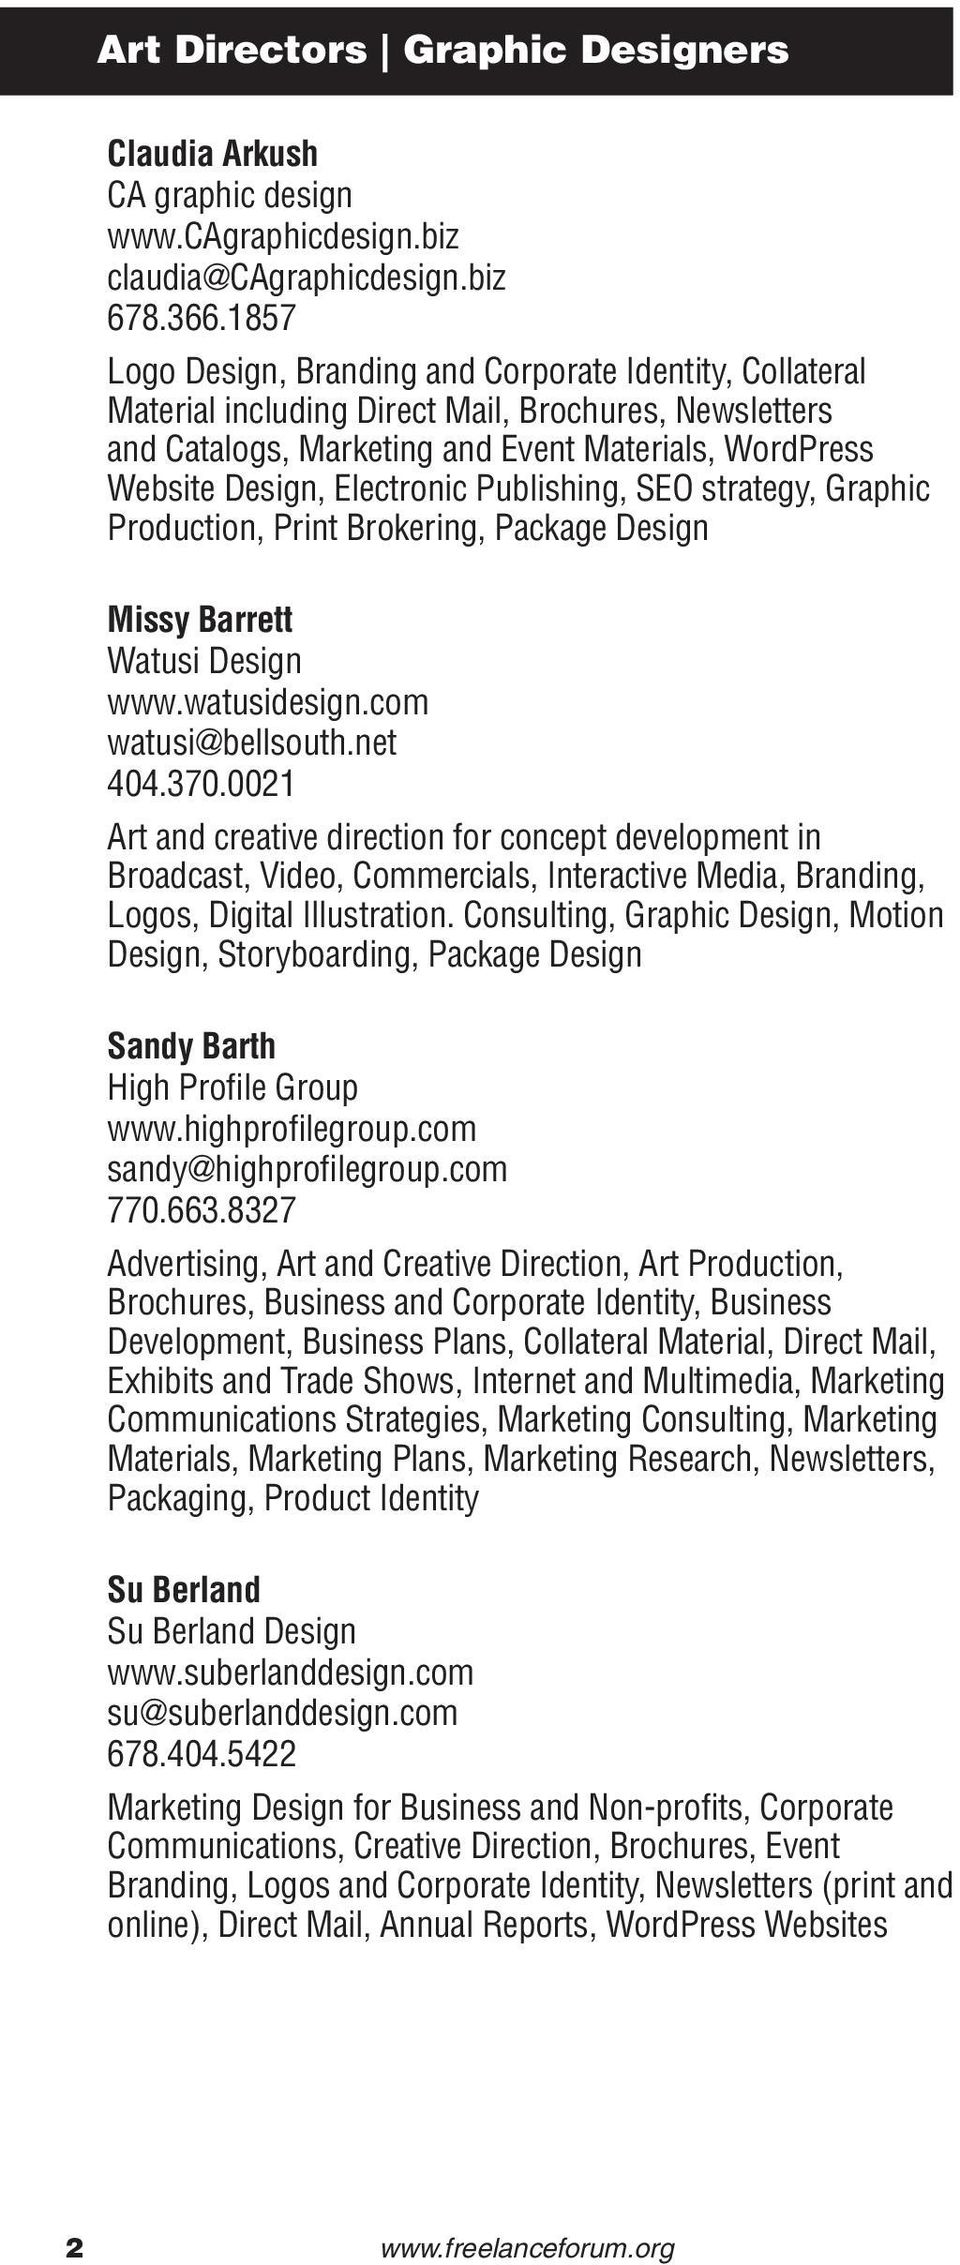 Publishing, SEO strategy, Graphic Production, Print Brokering, package design Missy Barrett Watusi Design www.watusidesign.com watusi@bellsouth.net 404.370.